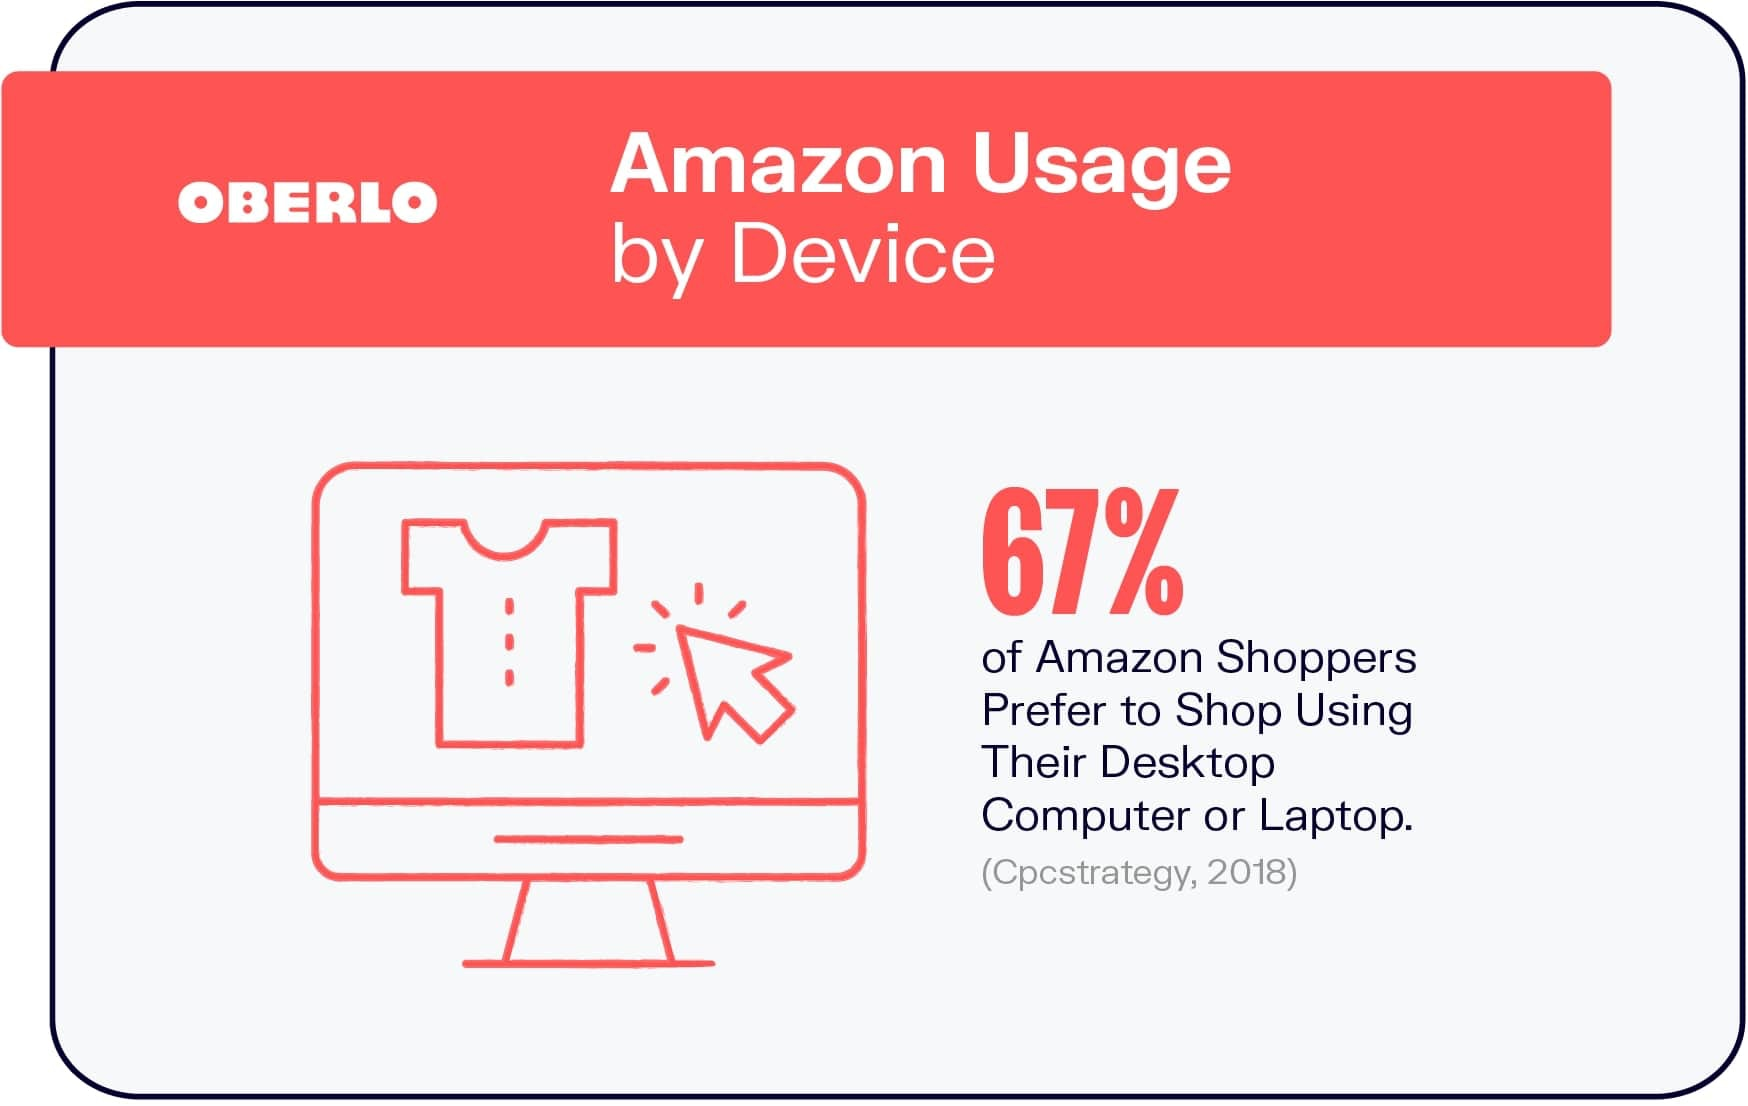 Amazon Usage by Device